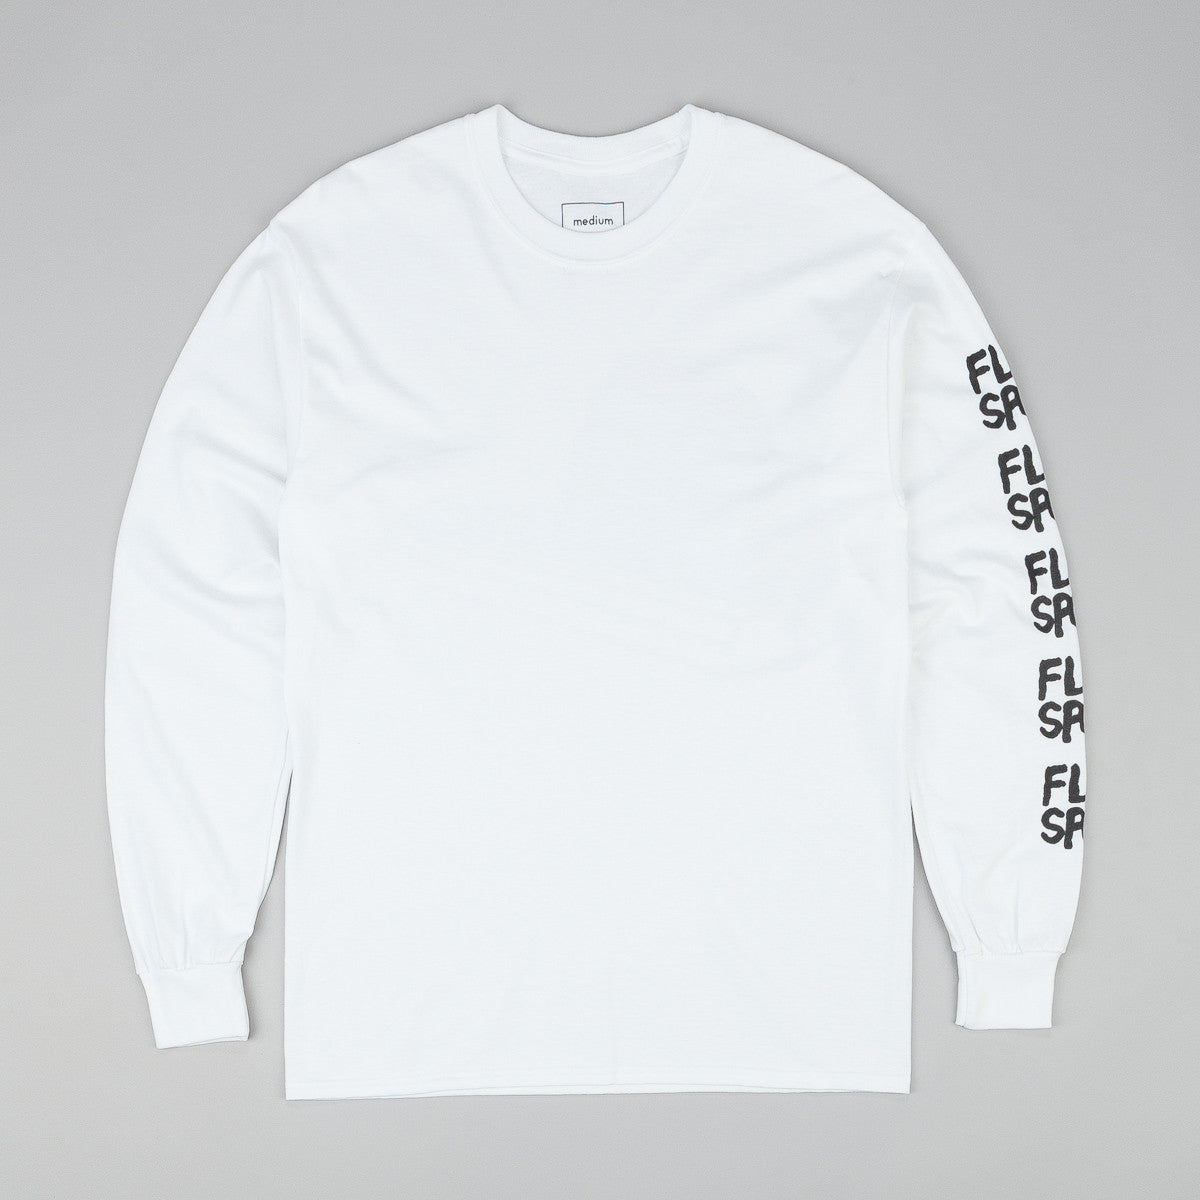 Flatspot Curbsniffer Long Sleeve T-Shirt - White